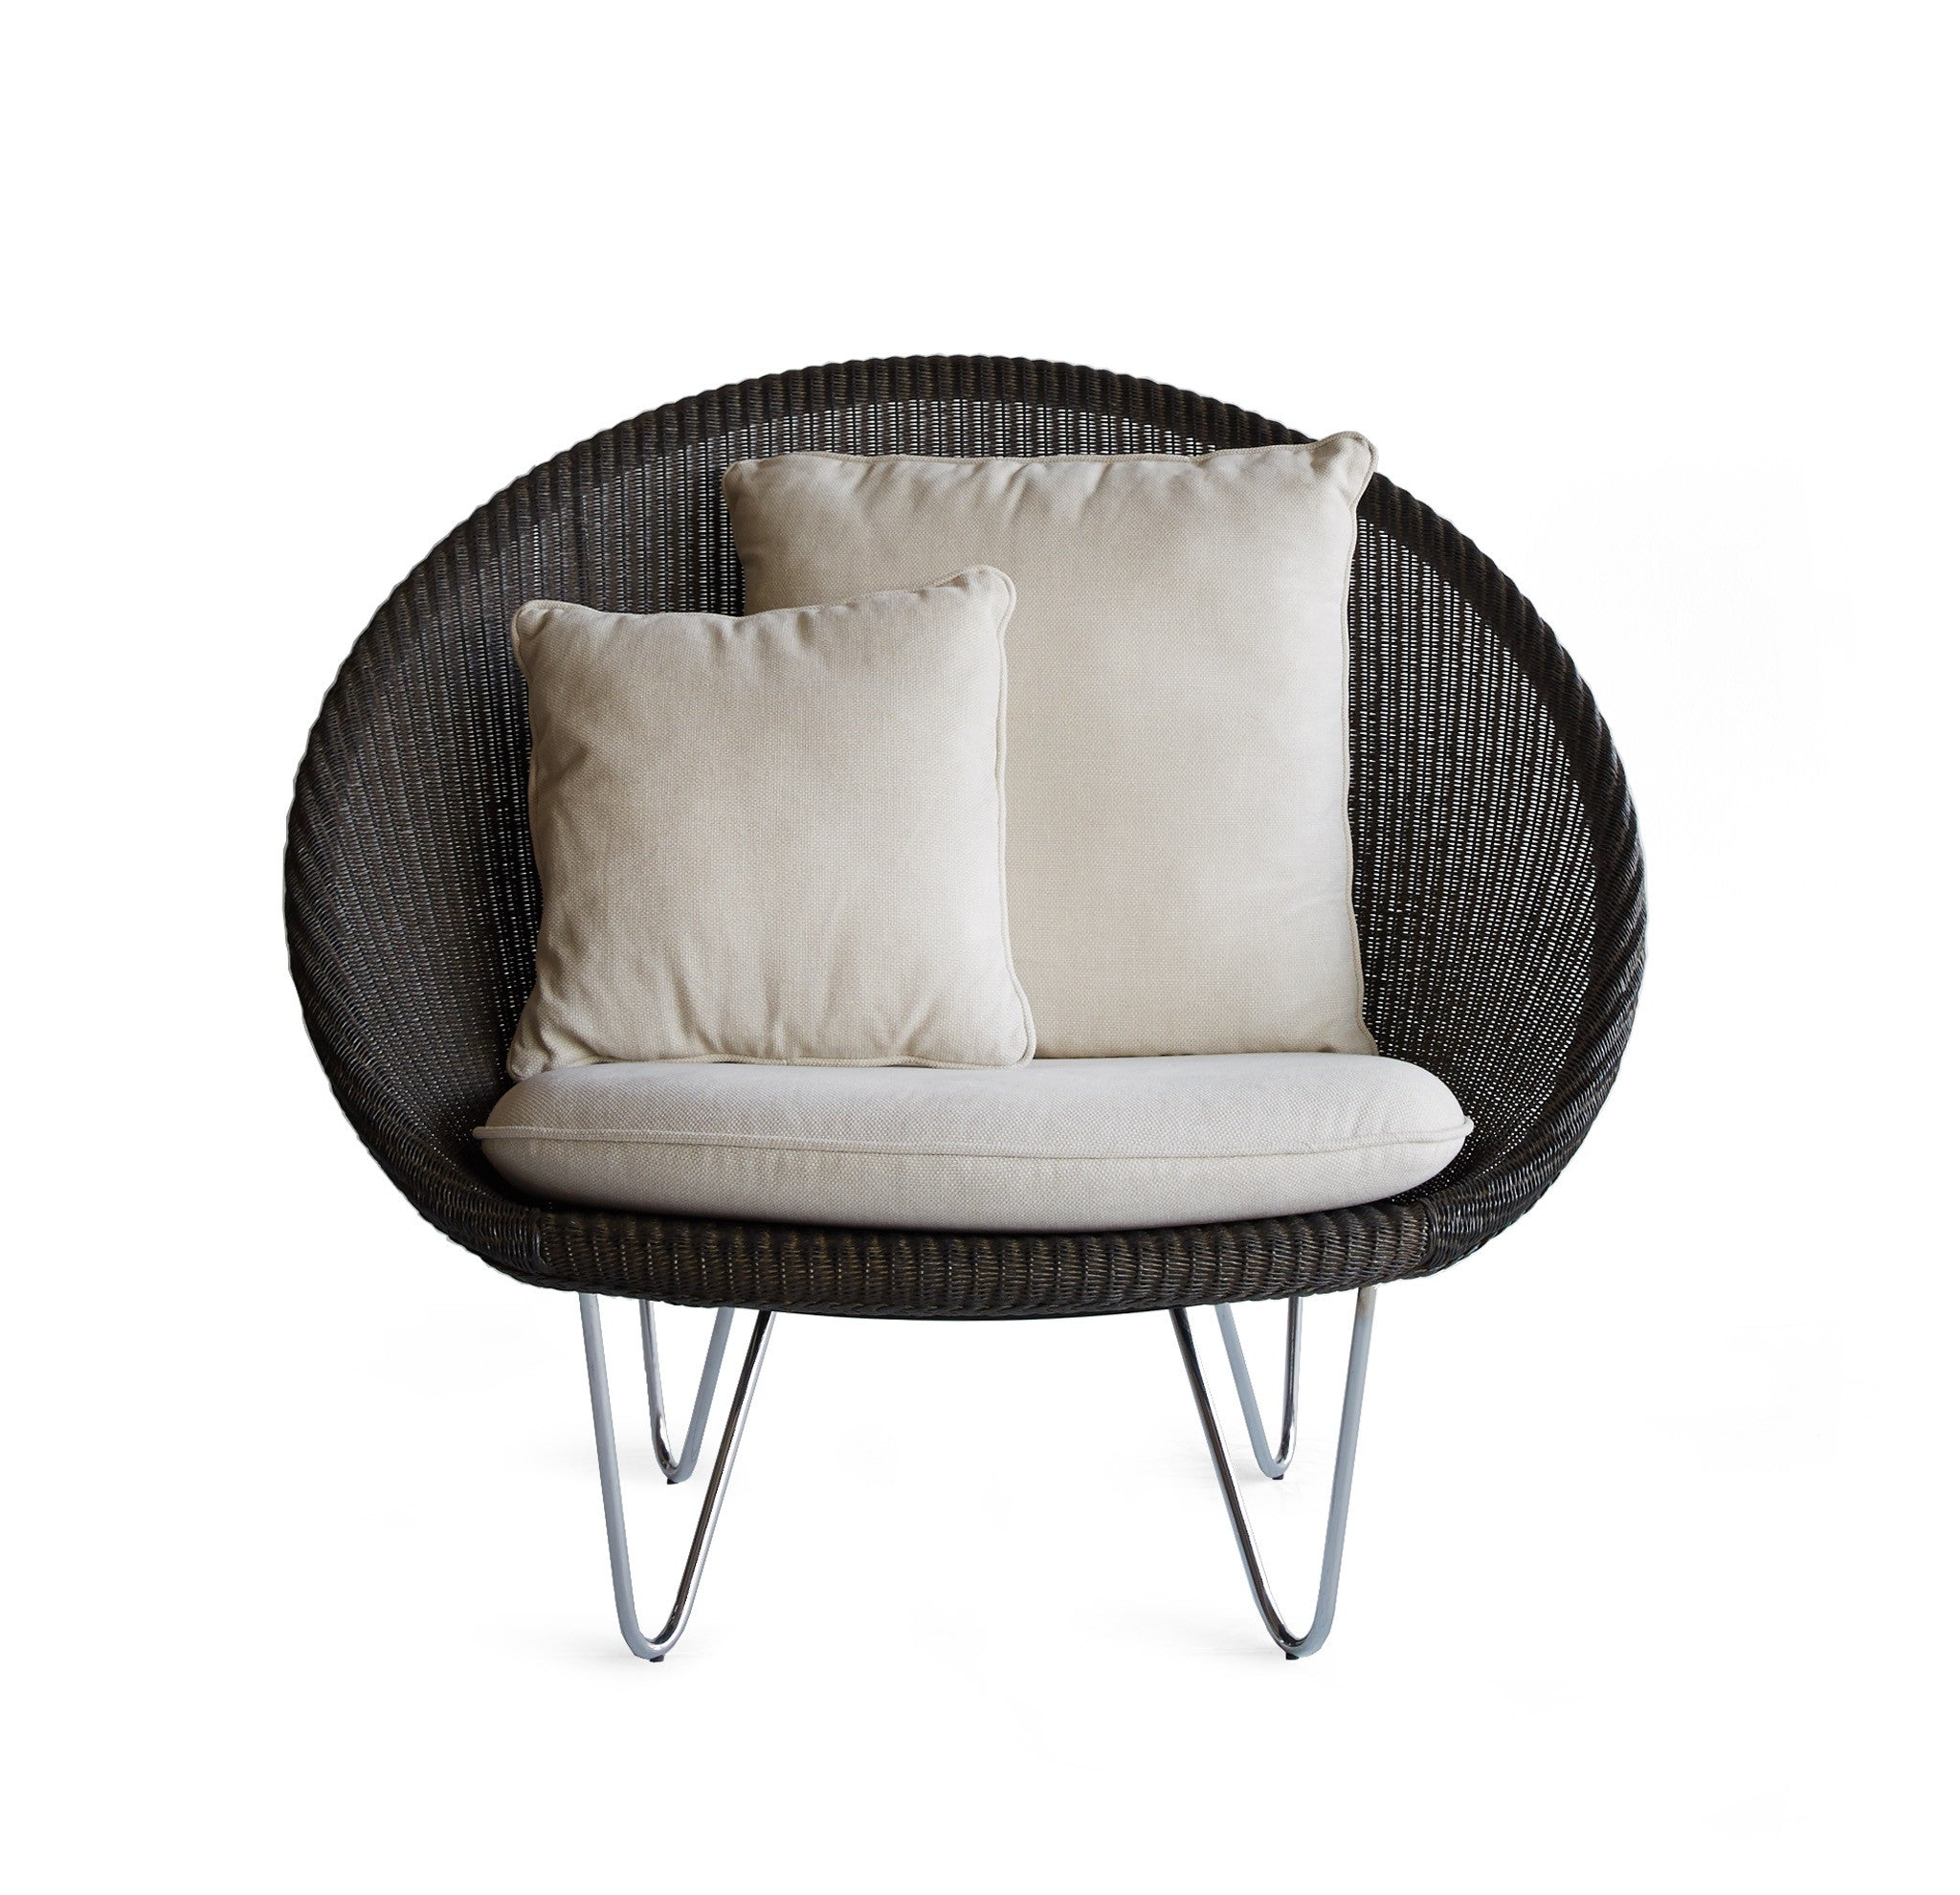 Joe Cocoon | Dark Grey Wash MW-Vincent Sheppard-Originals Furniture - 1